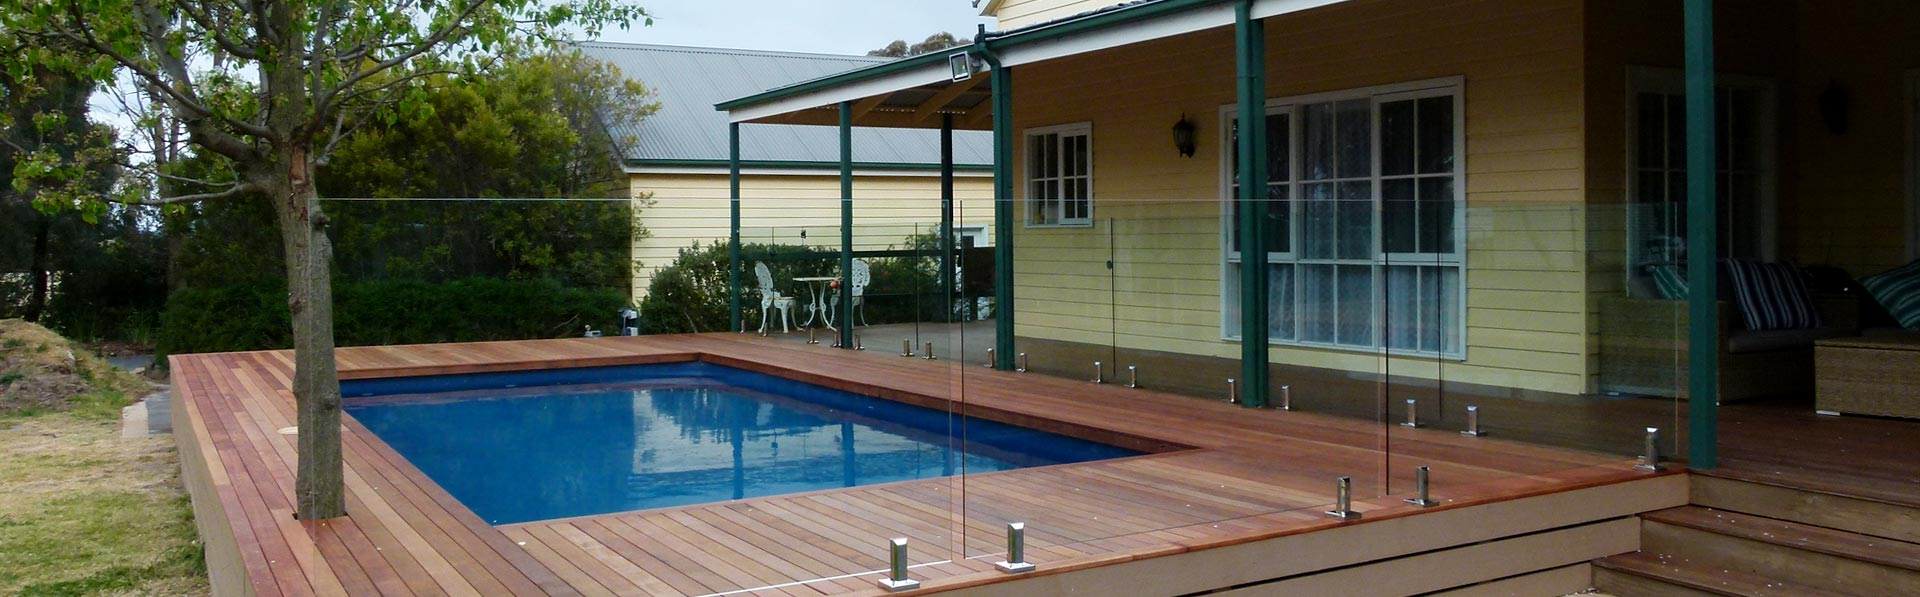 brightwaters above ground pool